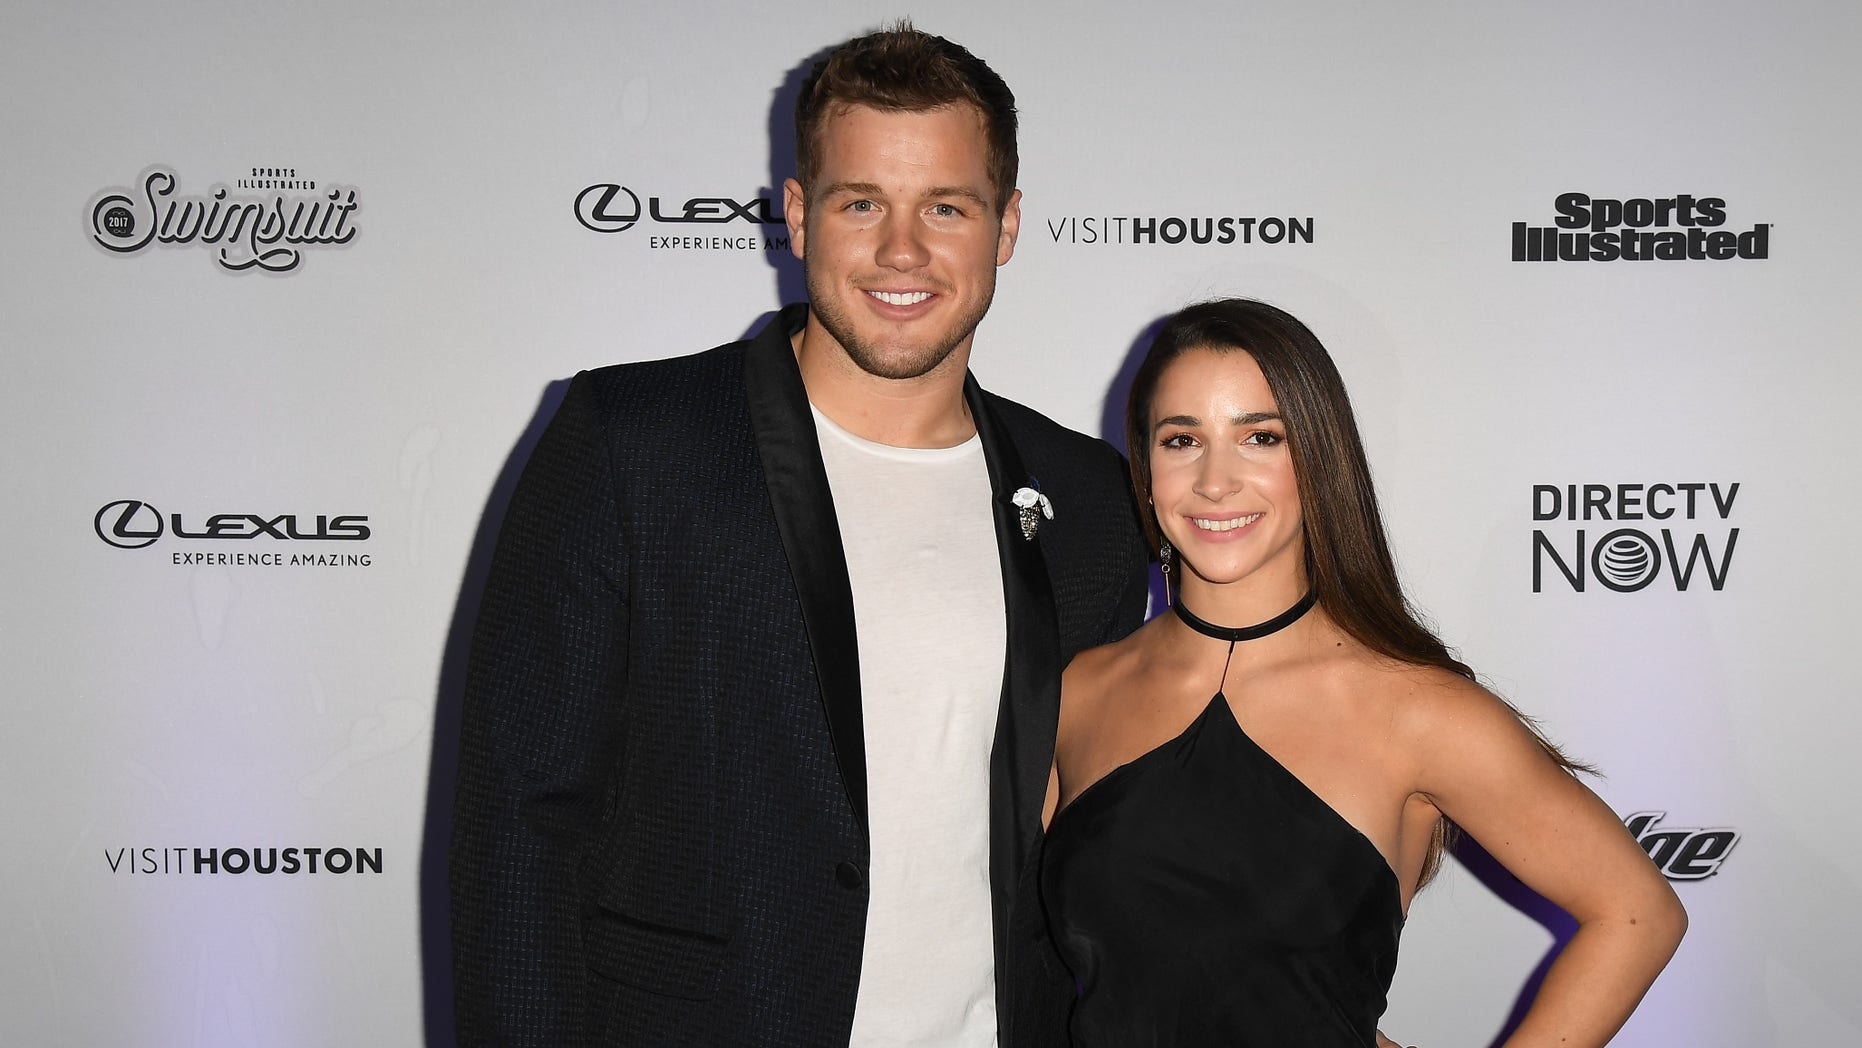 """Colton Underwood talked about Aly Raisman being her """"first love"""" and """"worst heartbreak."""""""